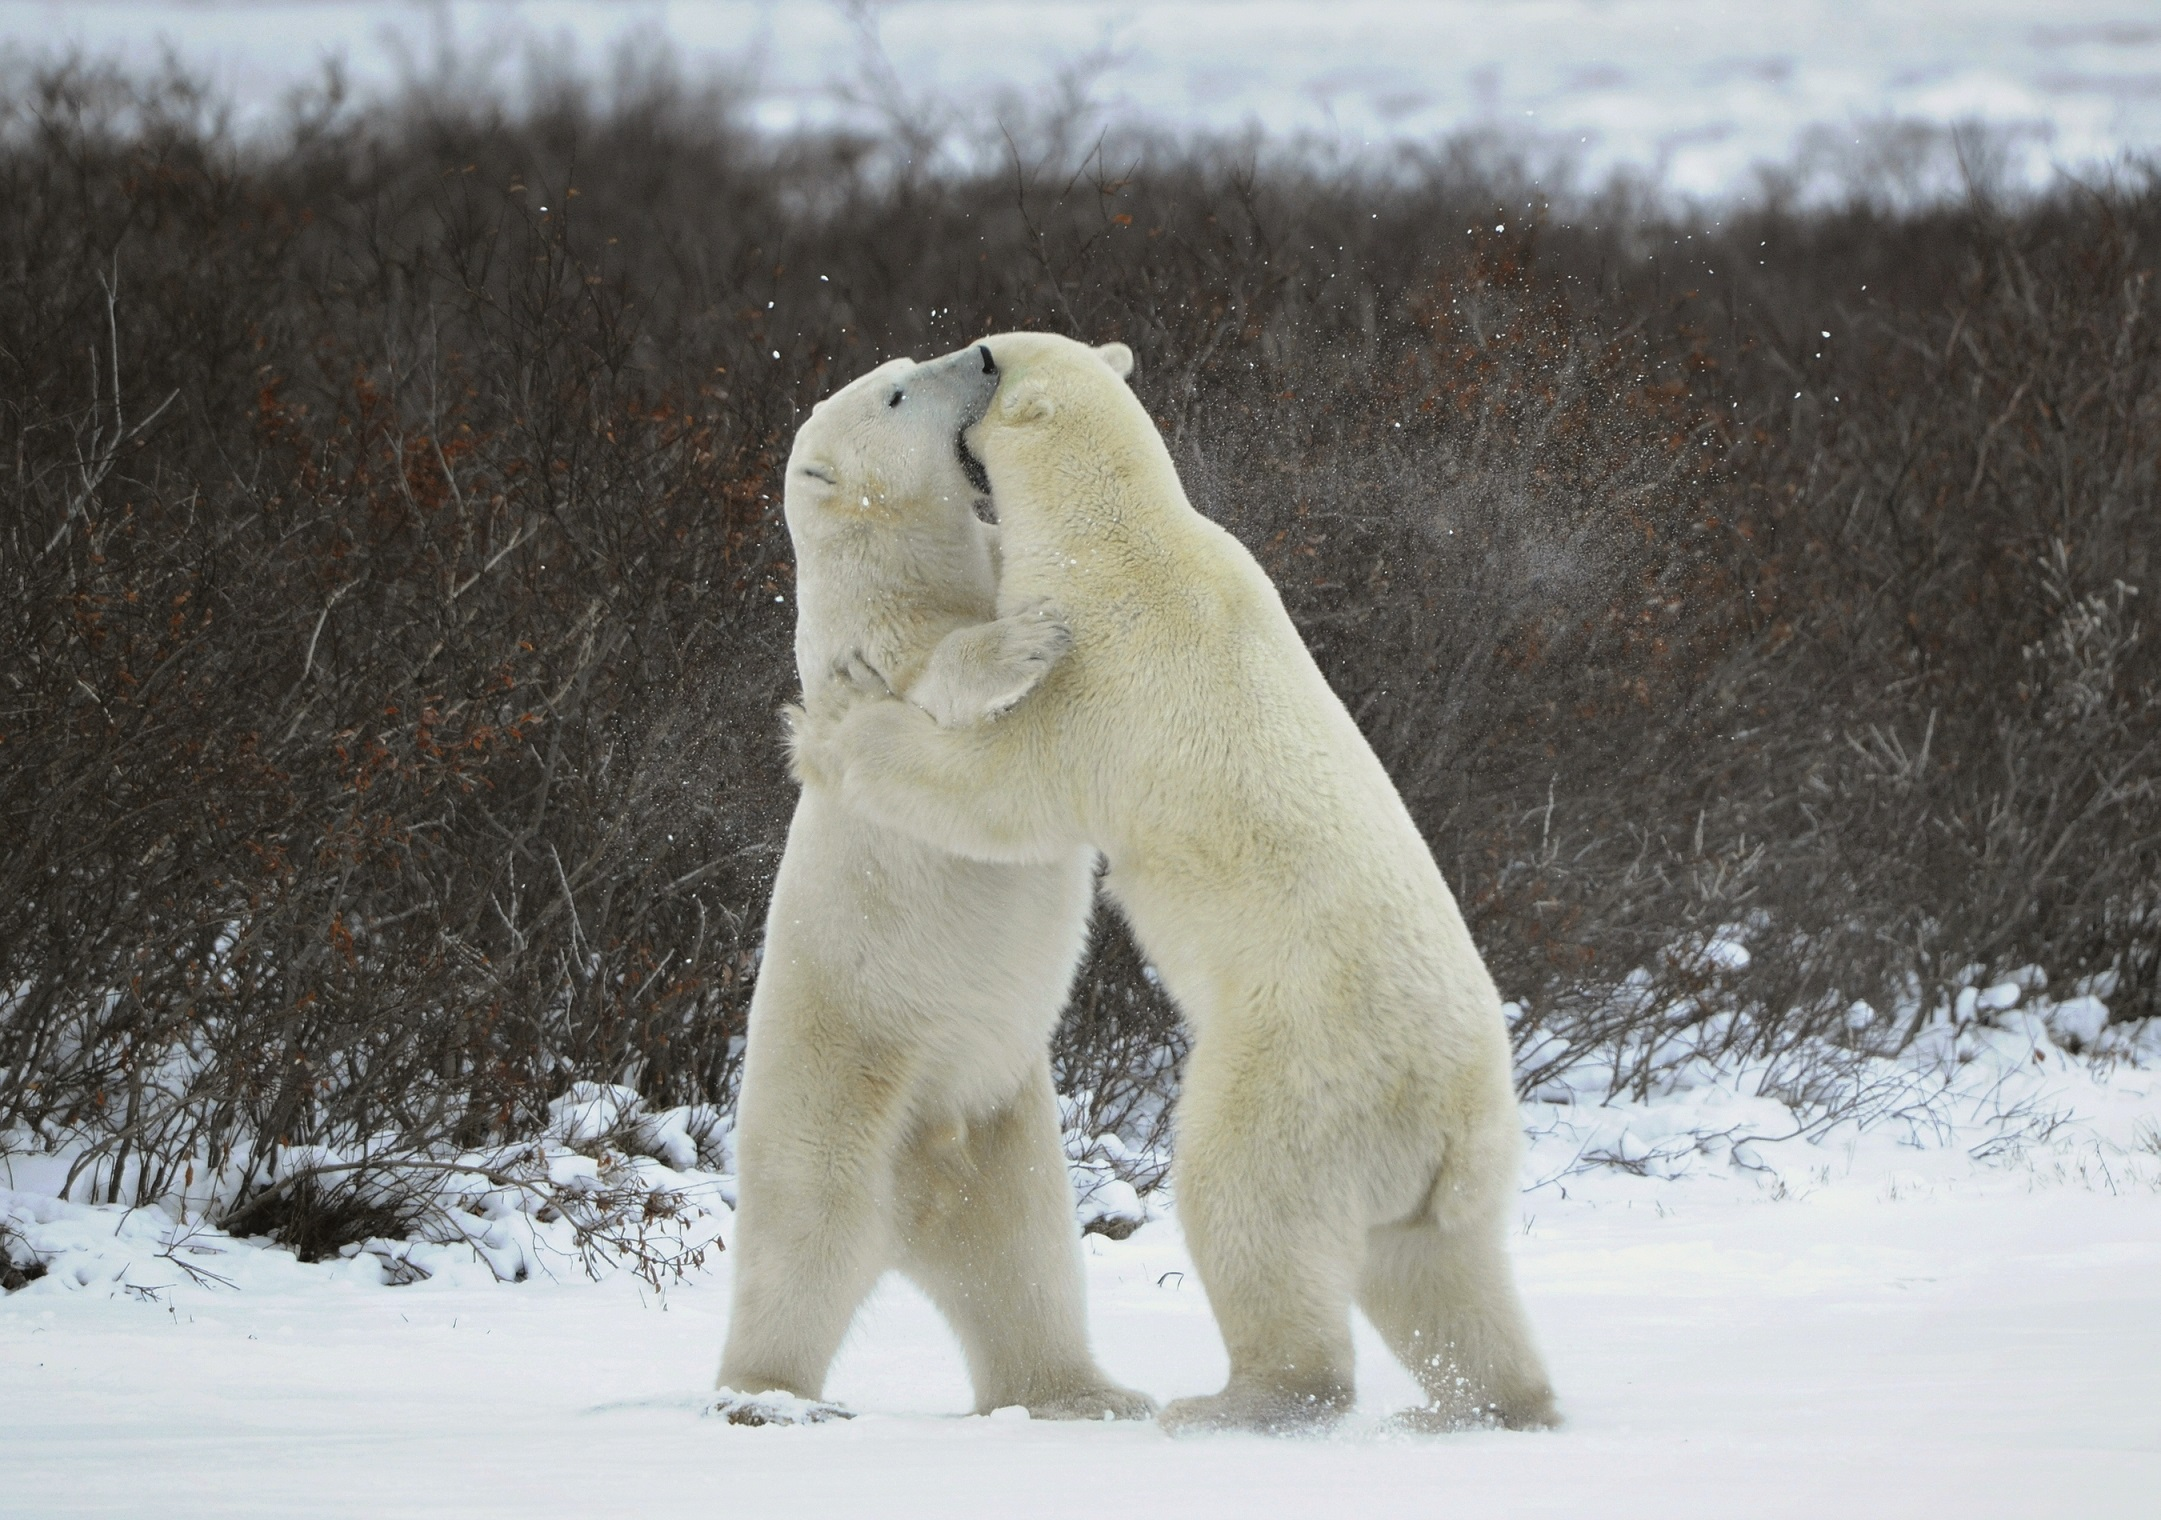 Two male bears fighting amidst snow and bushes